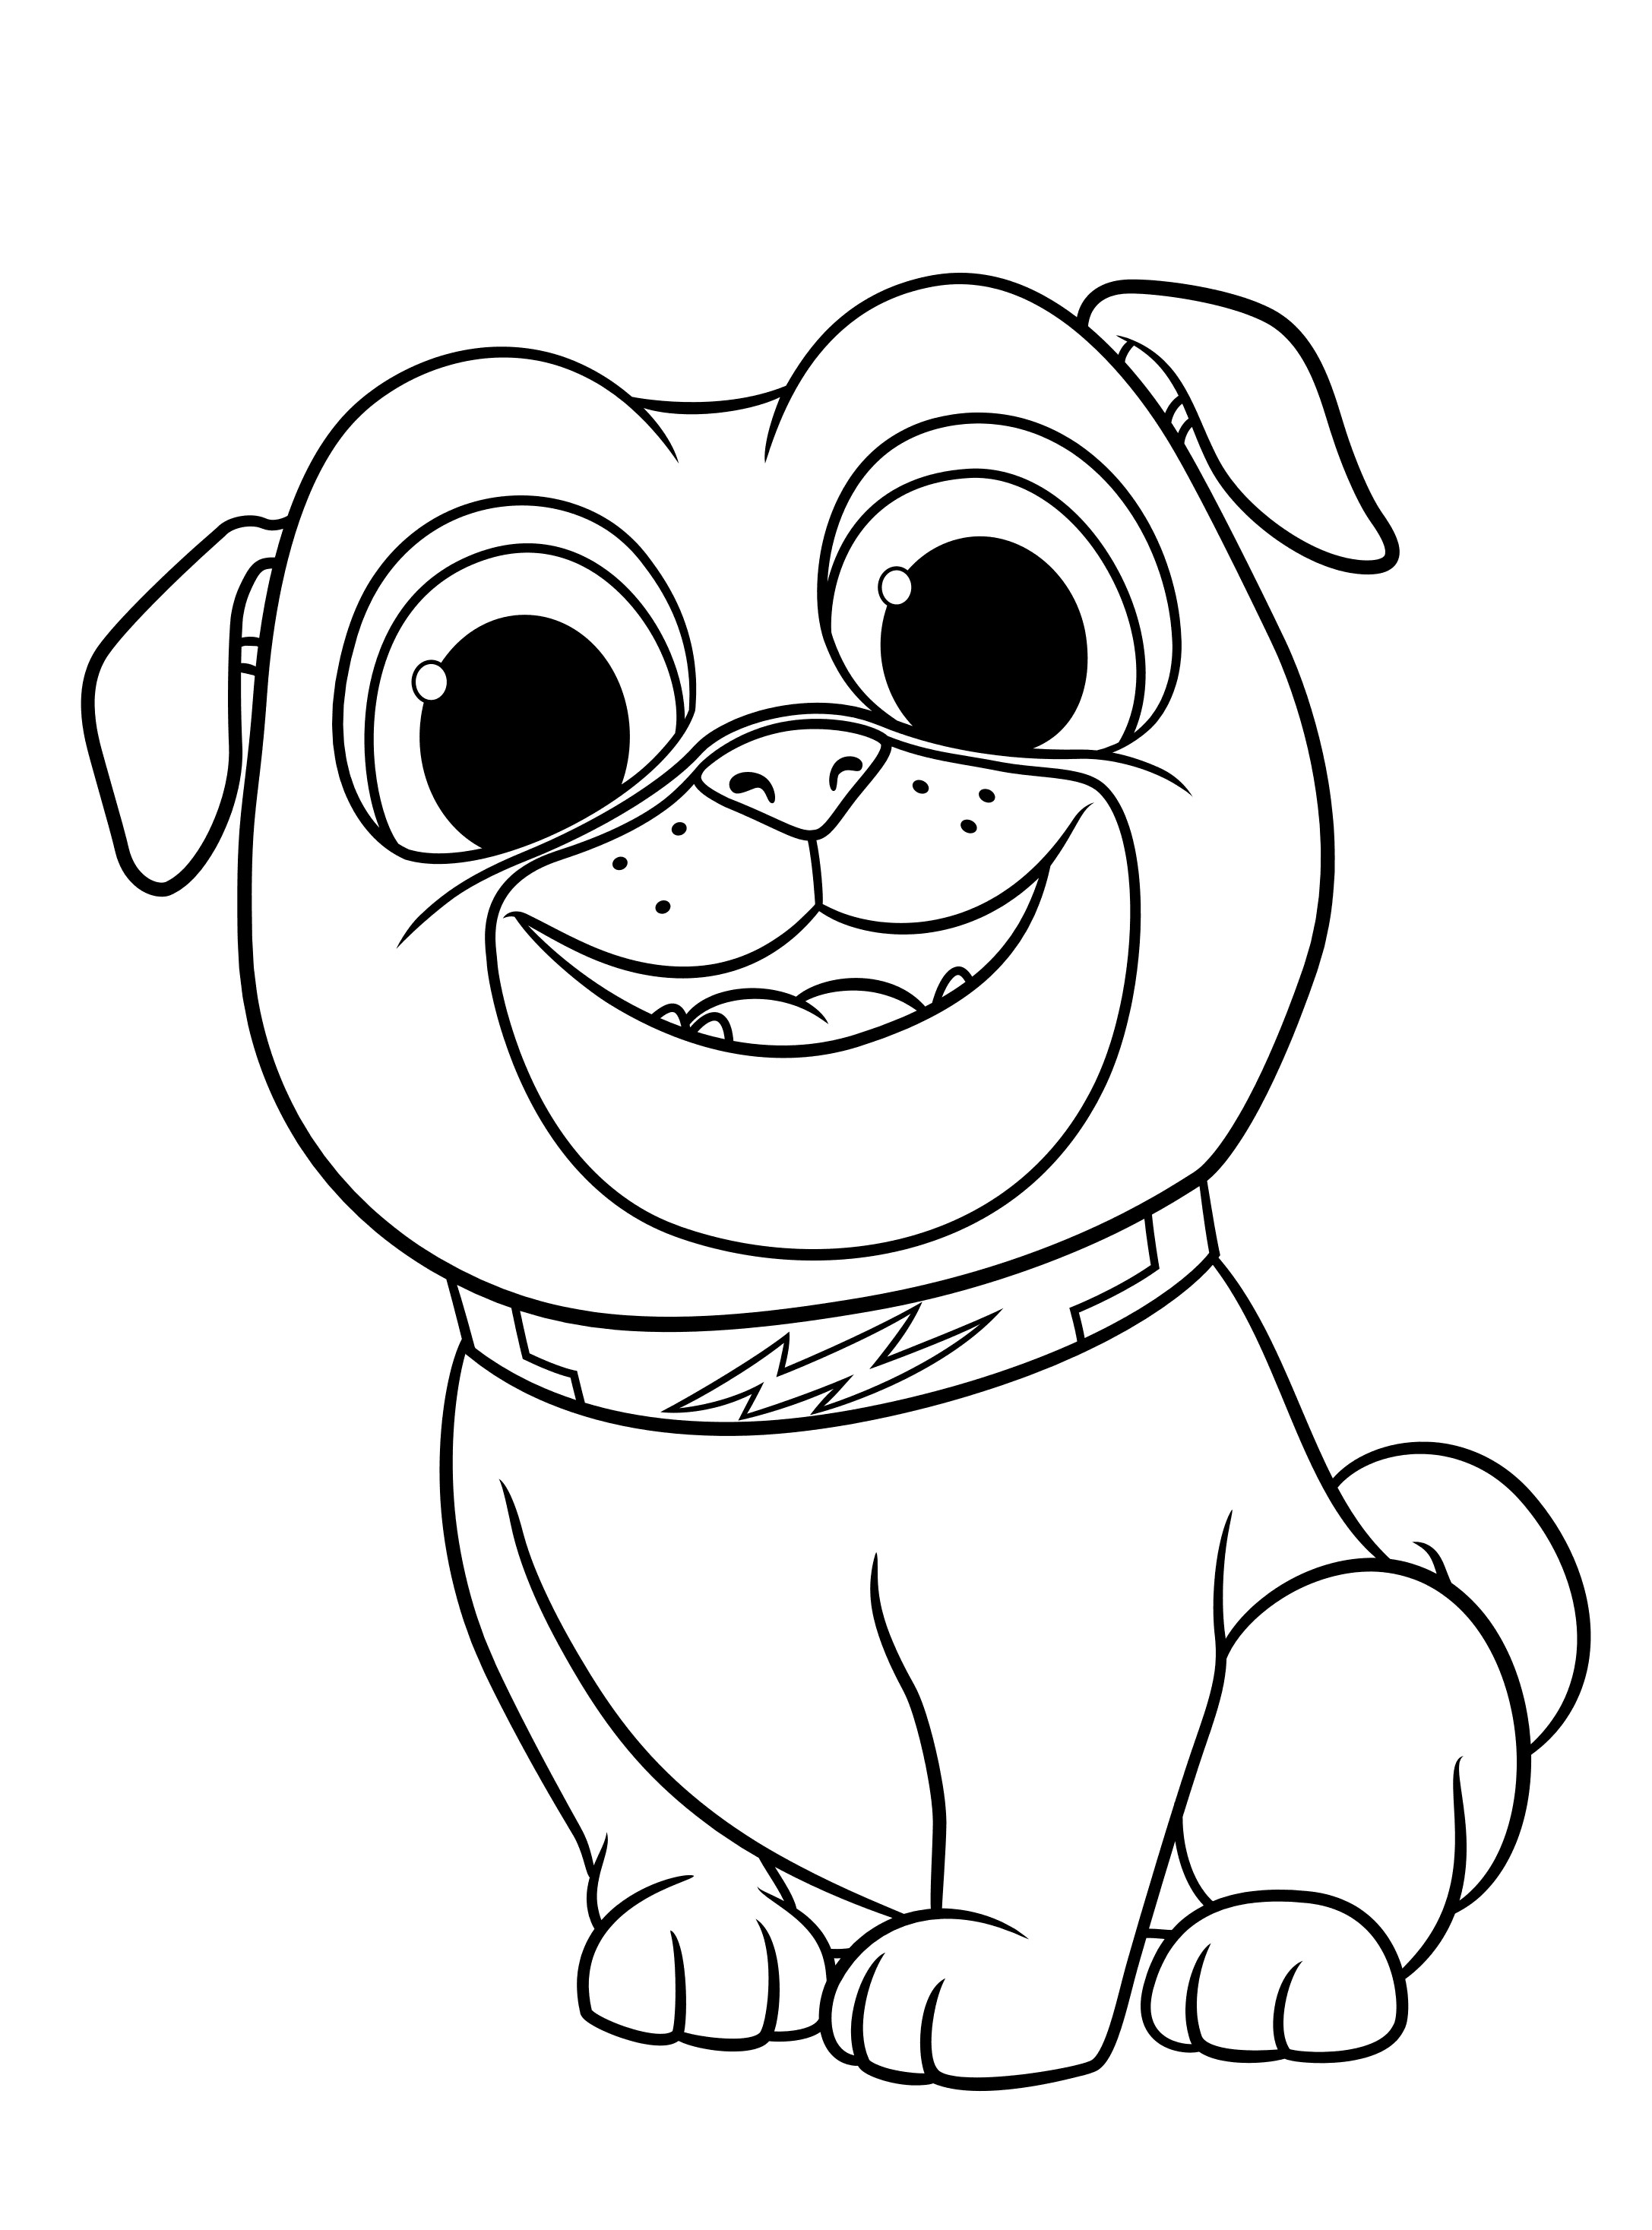 coloring page puppy puppy dog pals coloring pages to download and print for free coloring puppy page